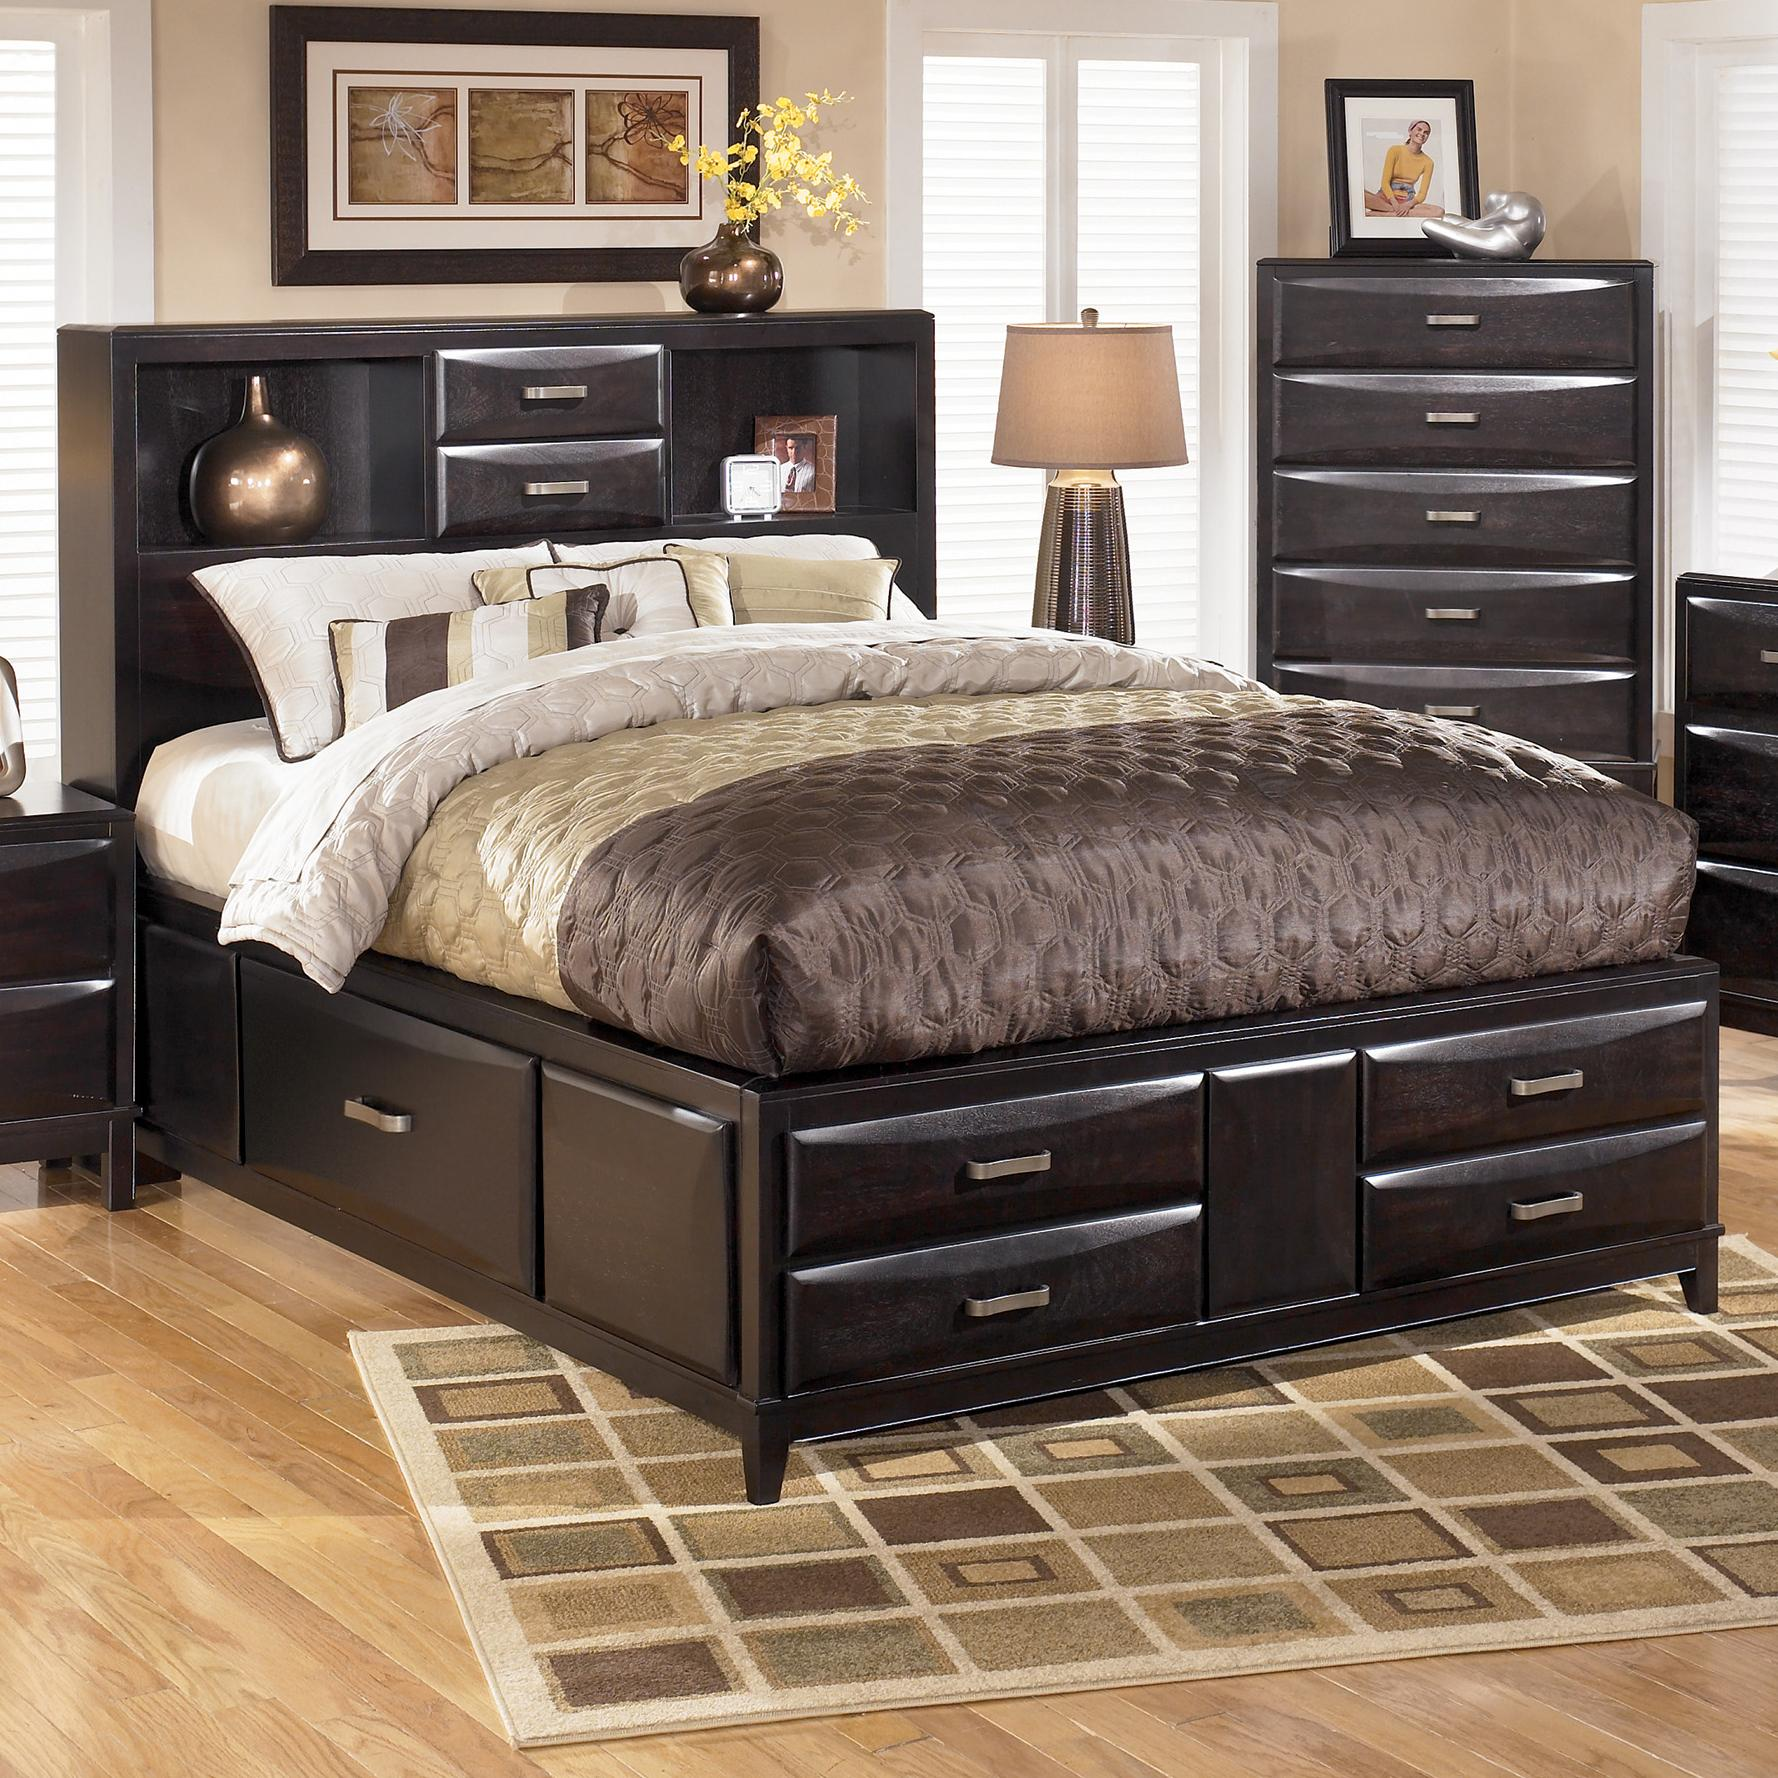 Ashley furniture kira queen storage bed john v schultz furniture captain 39 s beds Home furniture and mattress